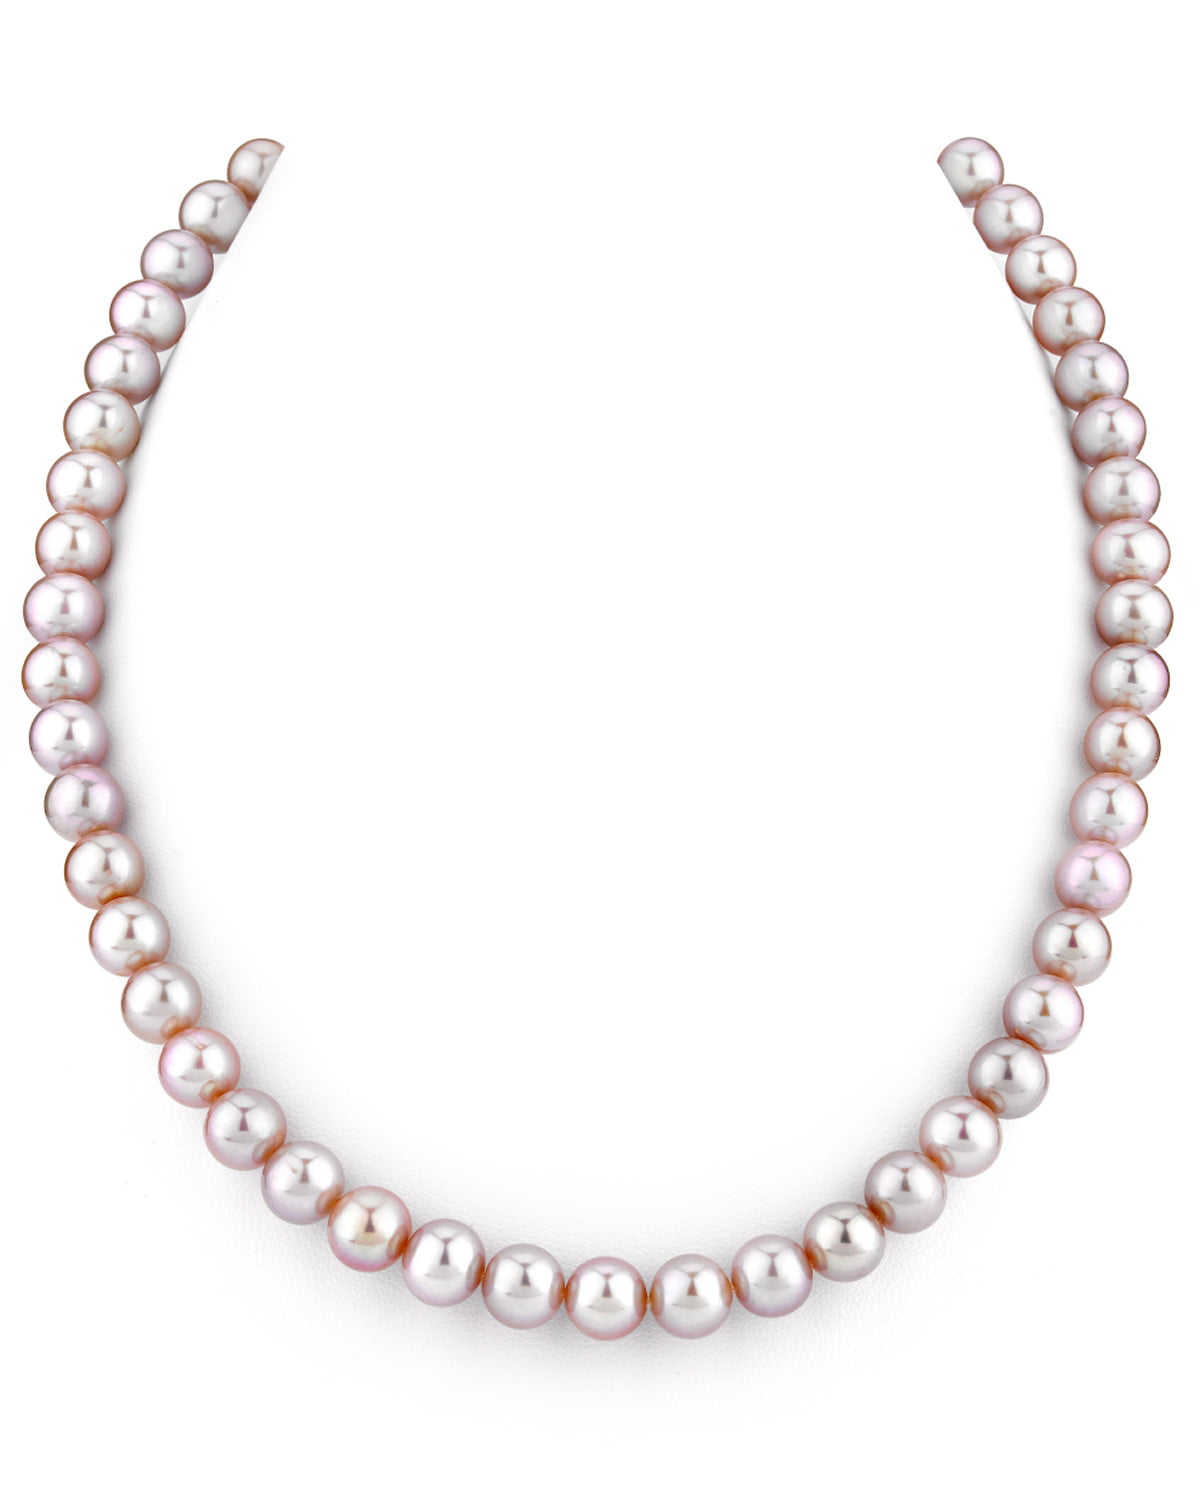 "THE PEARL SOURCE 14K Gold 7-8mm AAA Quality Pink Freshwater Cultured Pearl Necklace for Women in 16"" Choker Length by The Pearl Source"